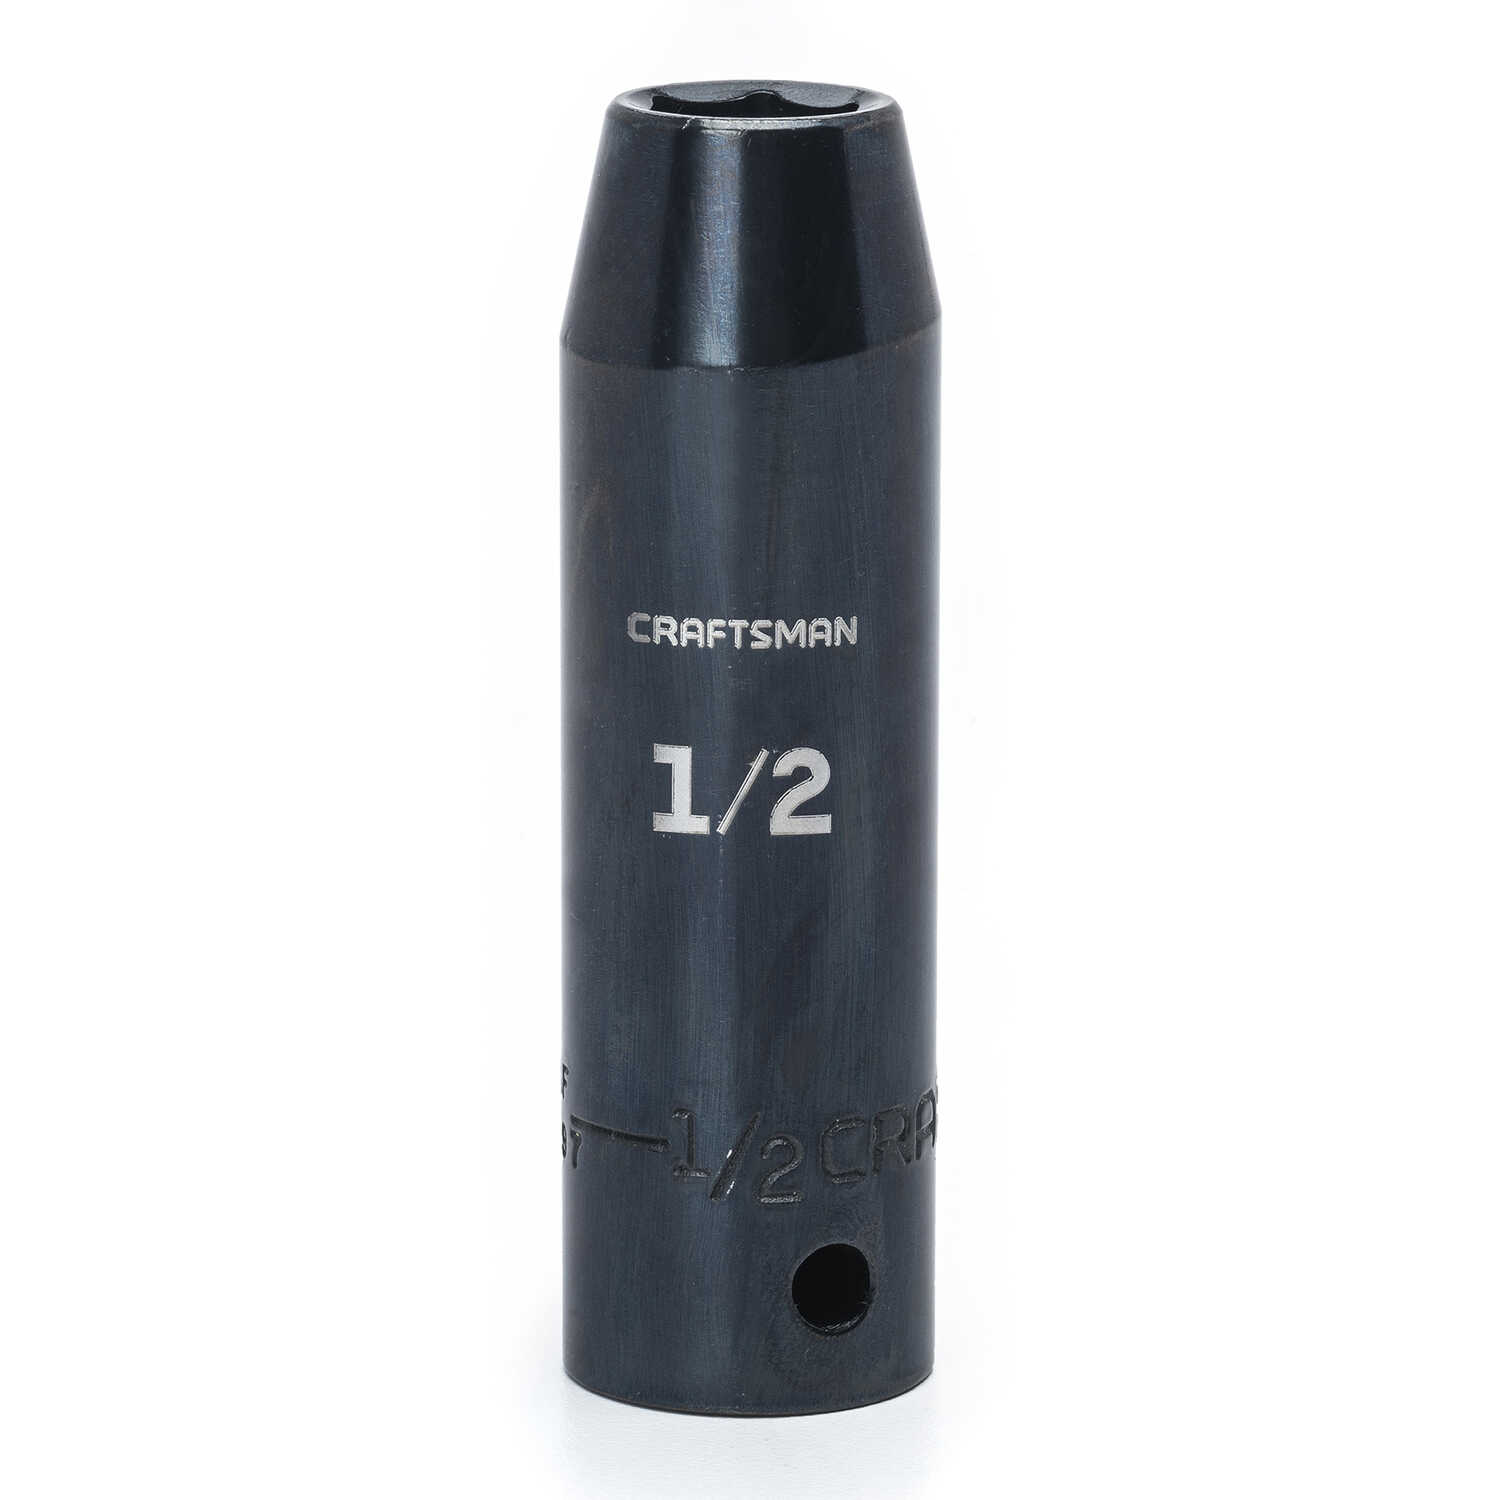 Craftsman  1/2 in.  x 1/2 in. drive  SAE  6 Point Deep  Impact Socket  1 pc.